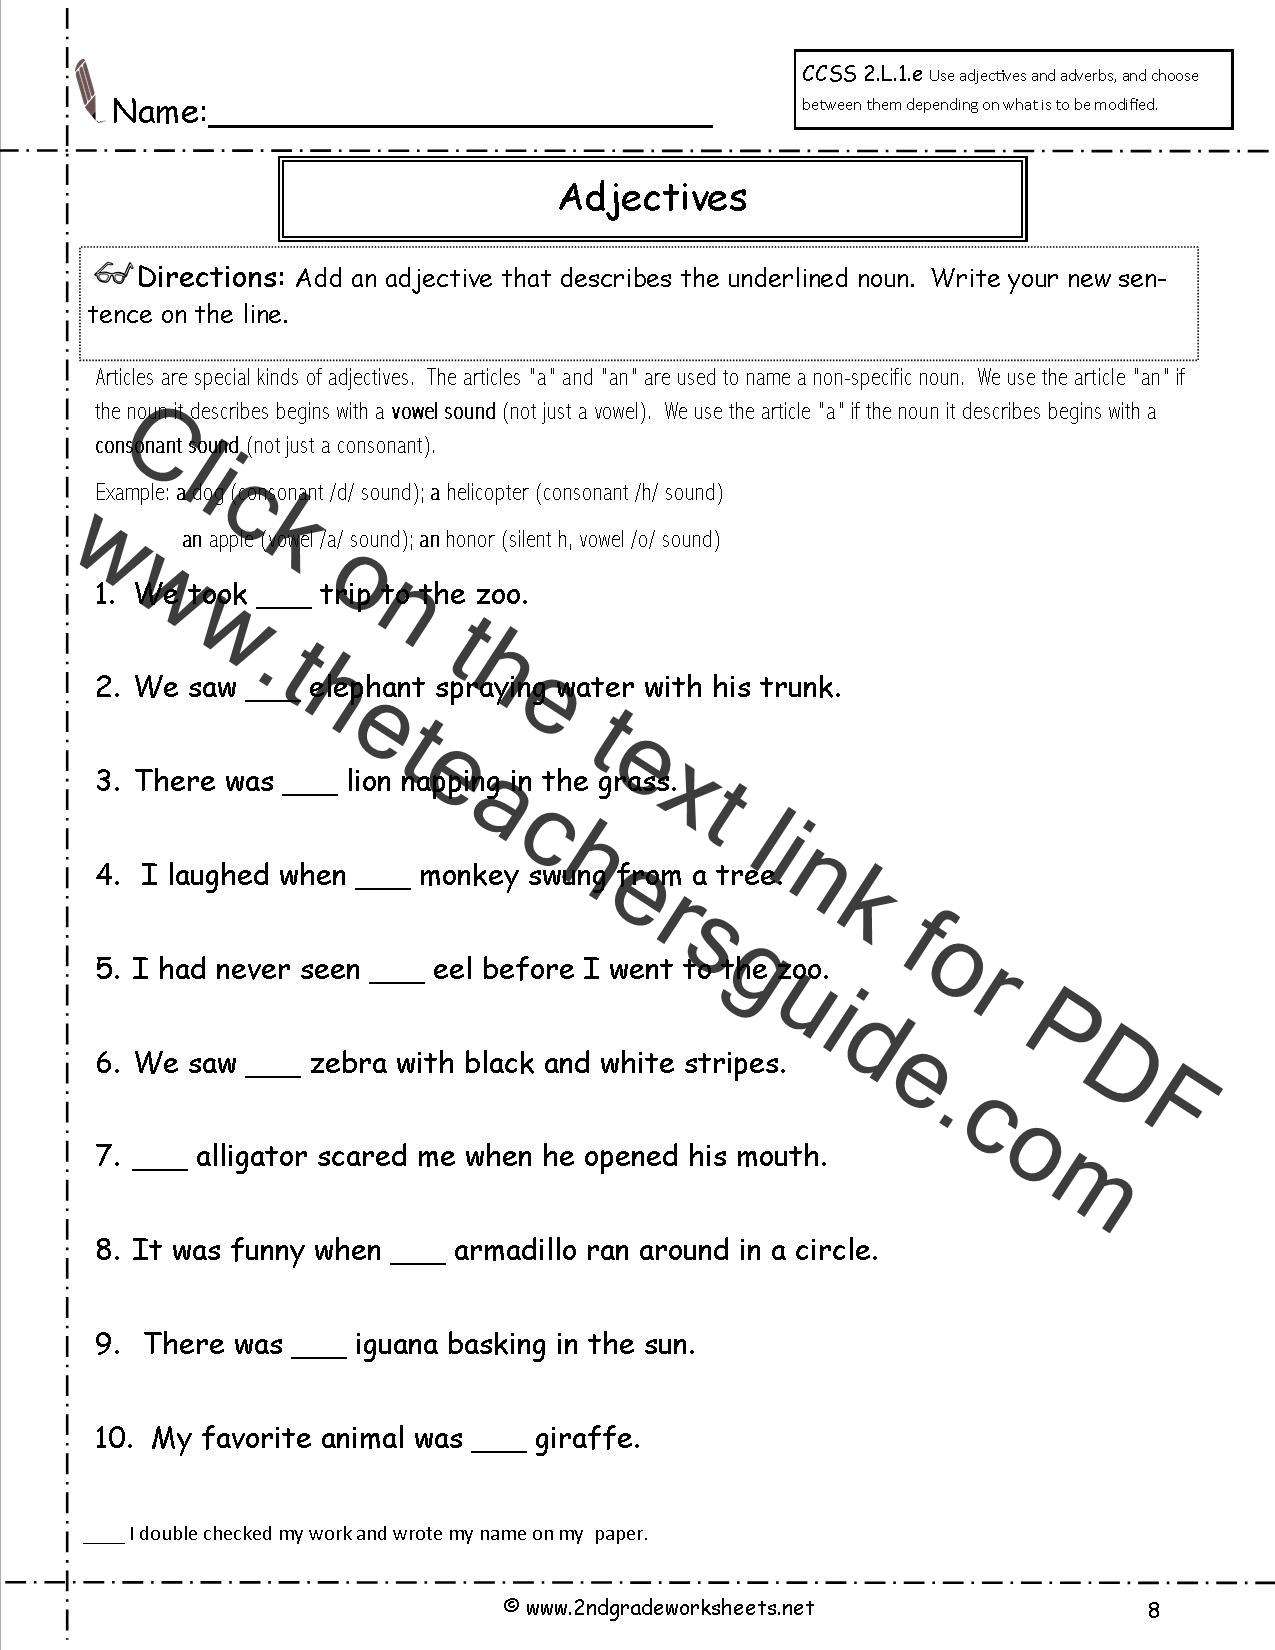 Free LanguageGrammar Worksheets and Printouts – Printable 2nd Grade Worksheets